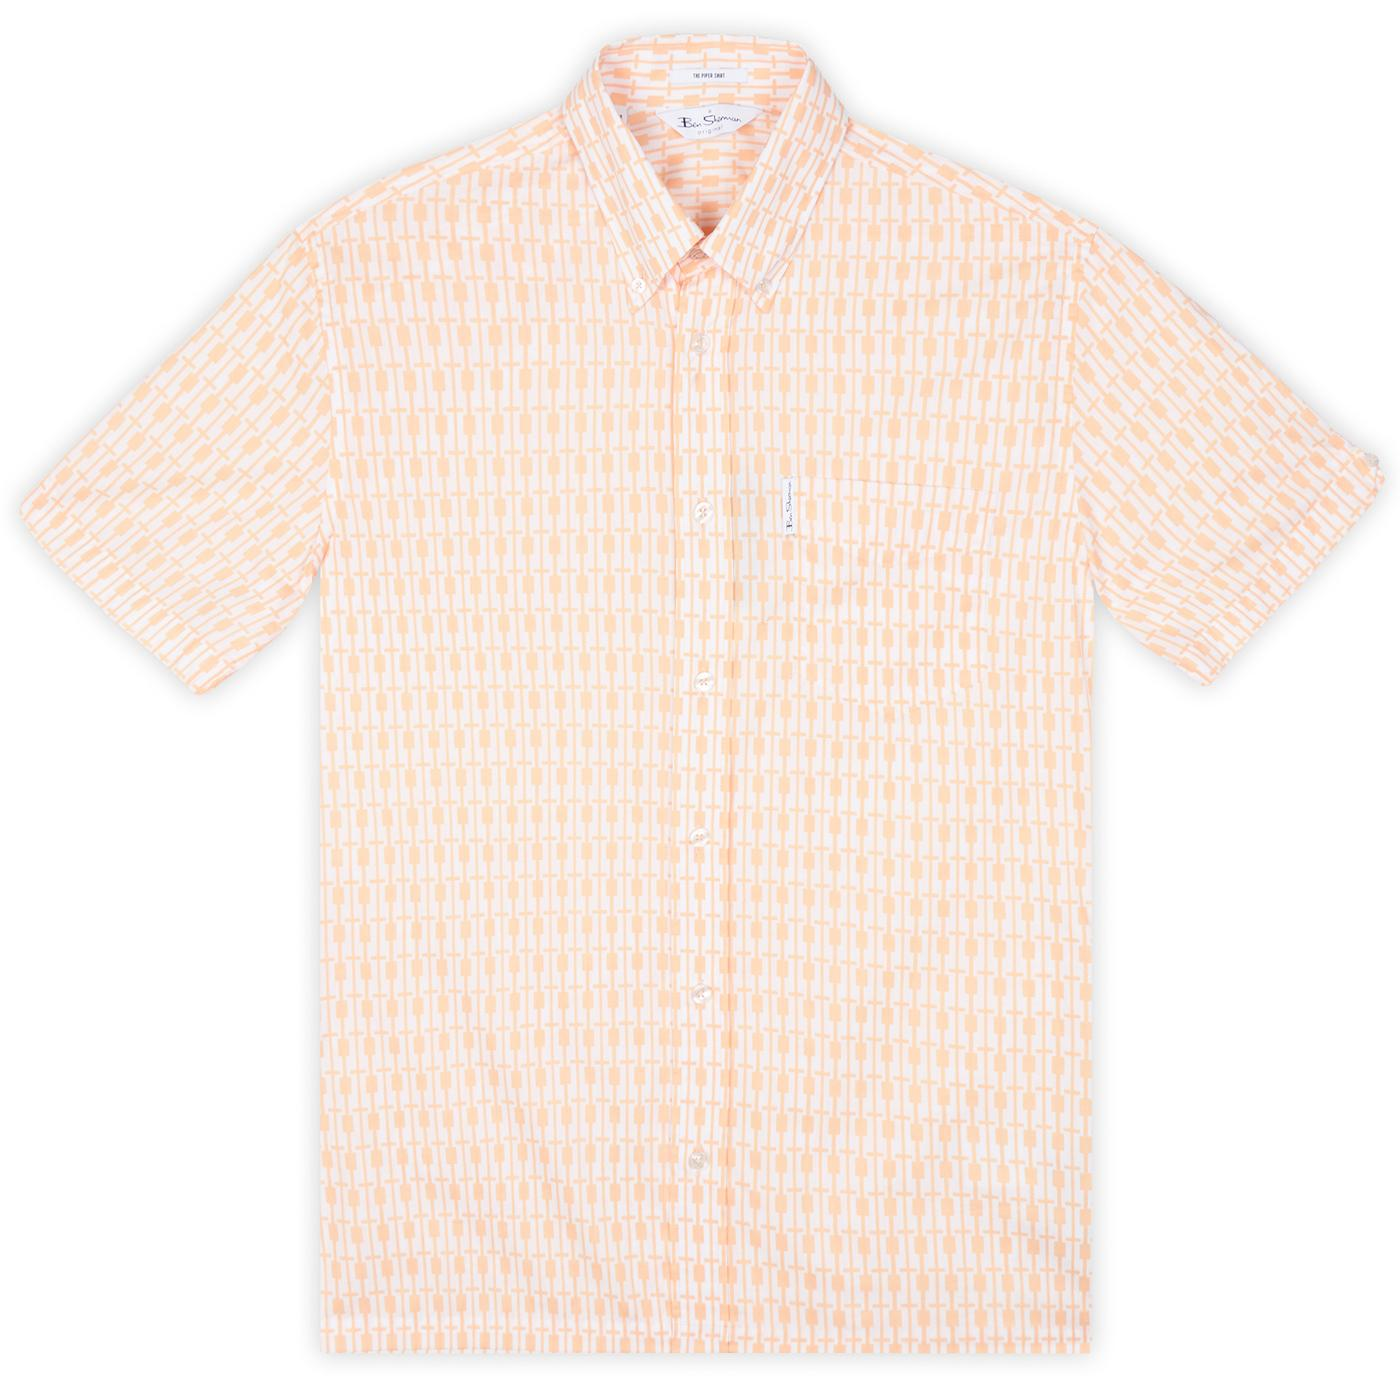 BEN SHERMAN Archive 90s Piper Mod S/S Shirt PEACH